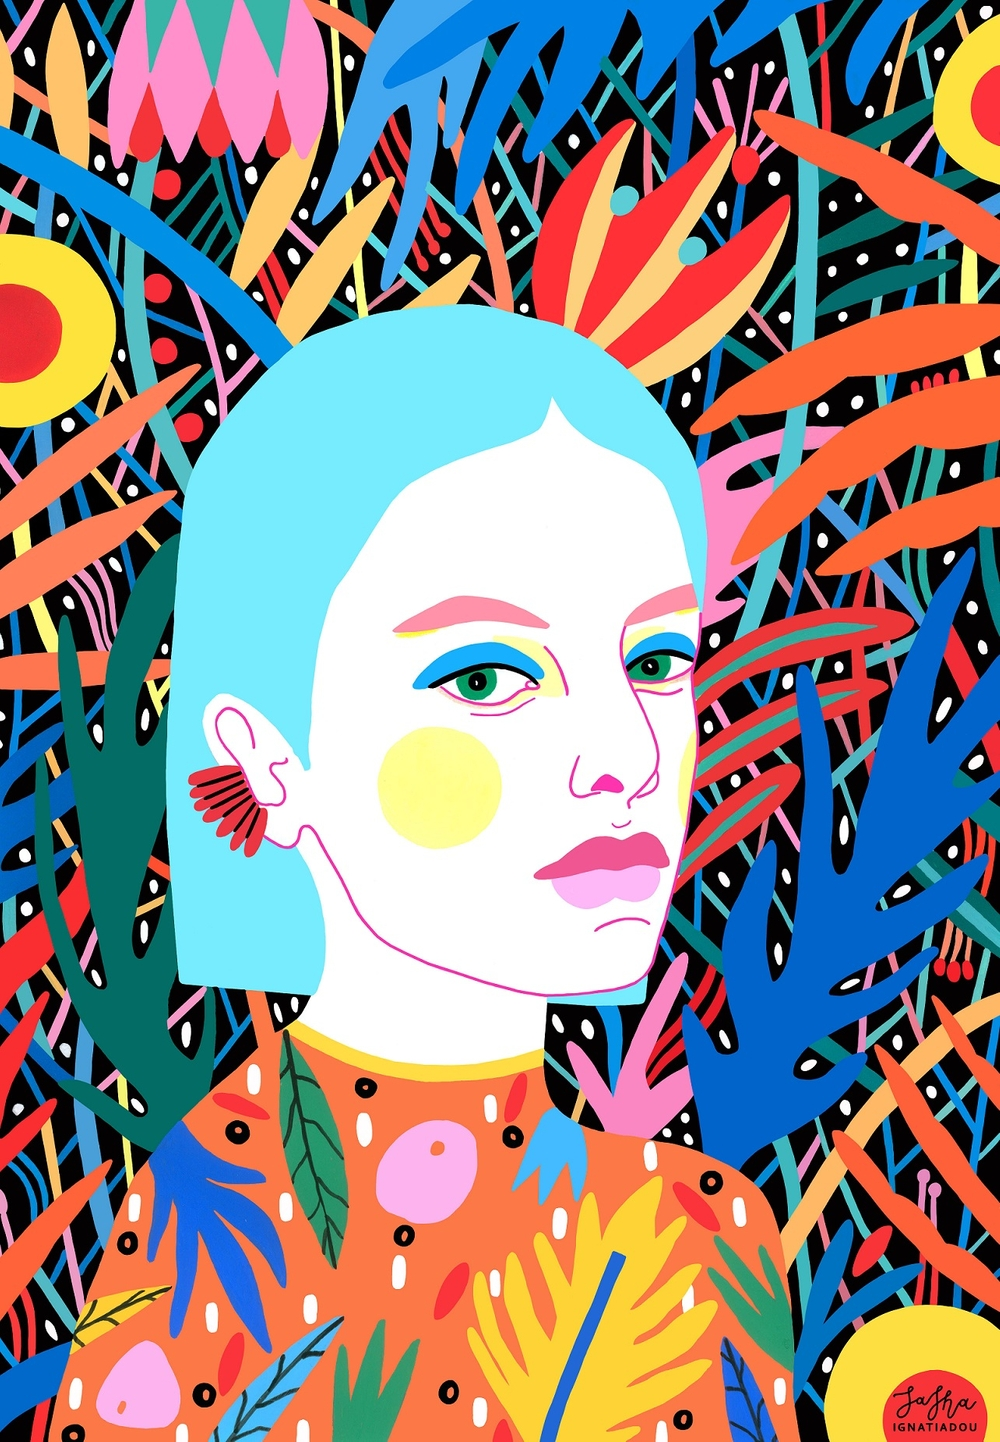 Illustrations from Sasha Ignatiadou- Design Peeper